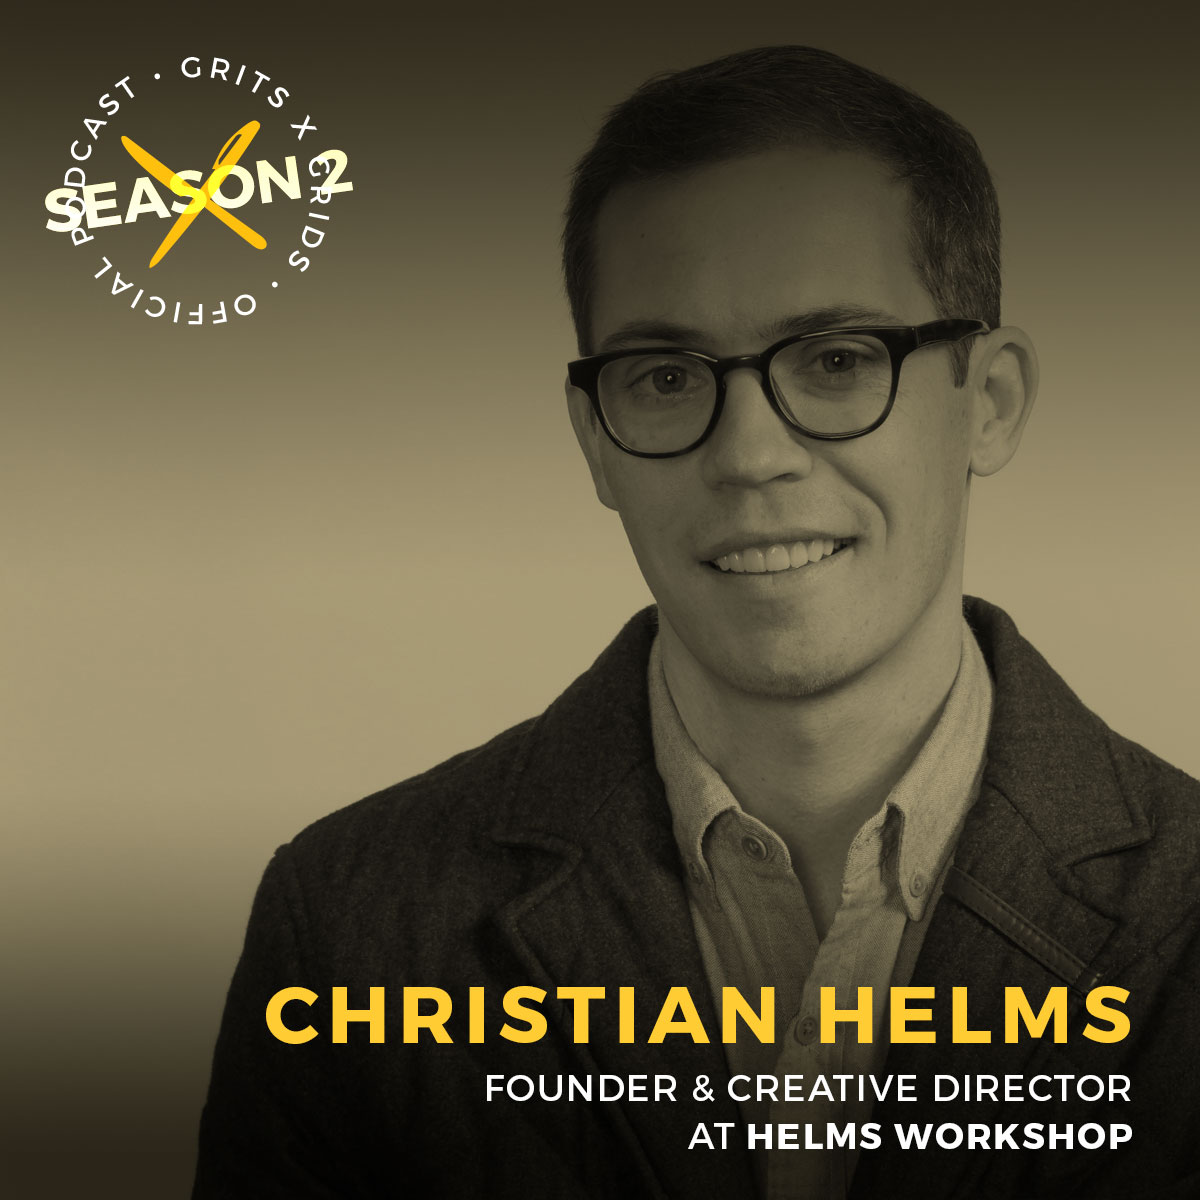 Podcast interview with creative director and founder of Helms Workshop in Austin Texas, Christian Helms